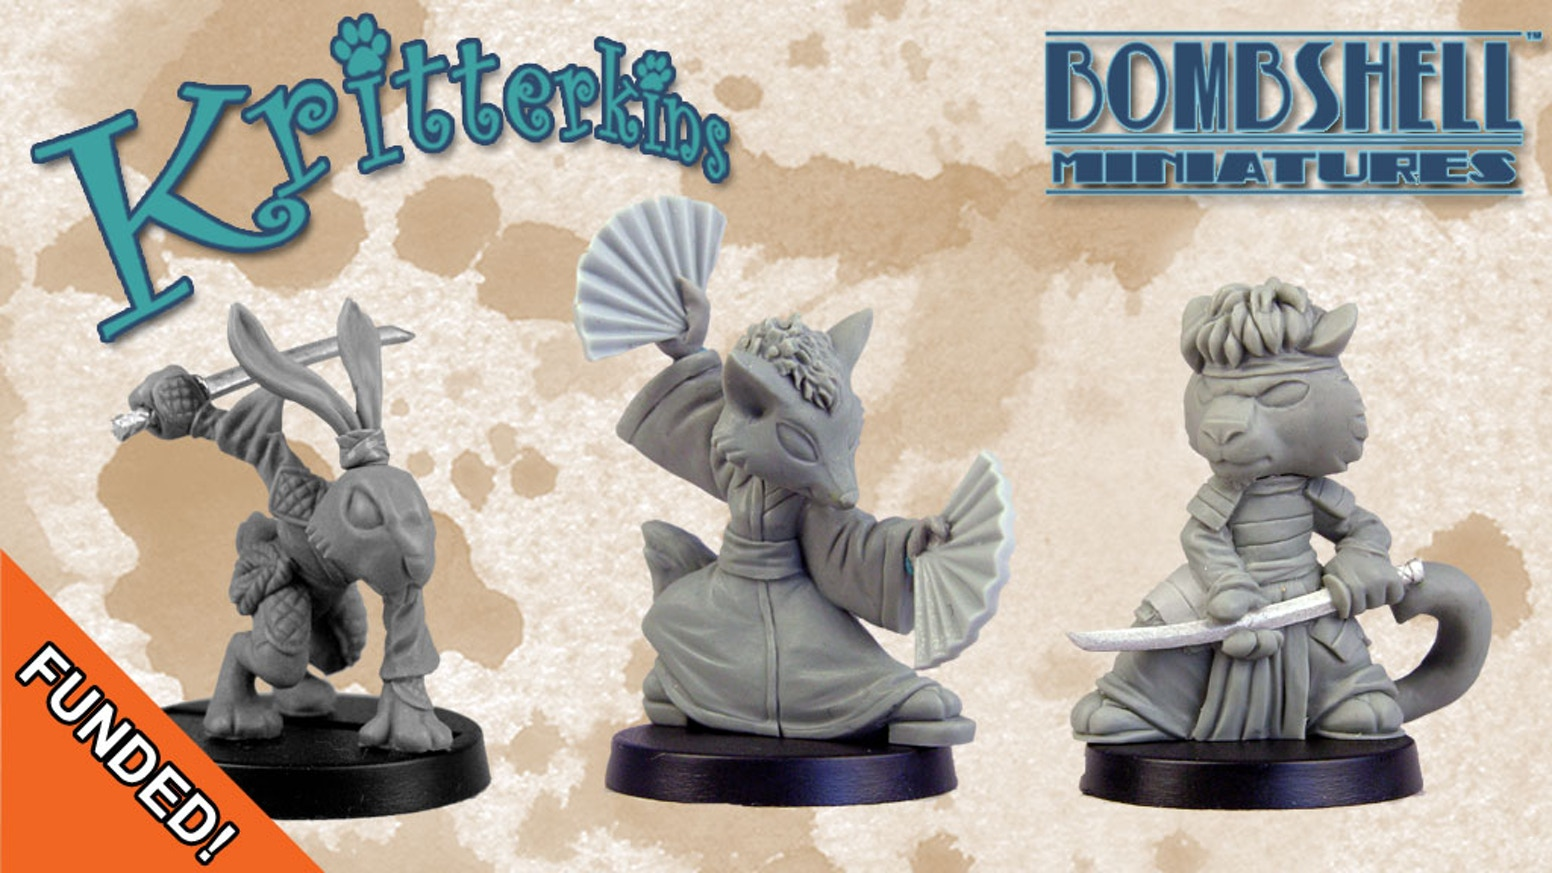 Fanciful critter miniatures for RPGs, tabletop games, or just for fun!